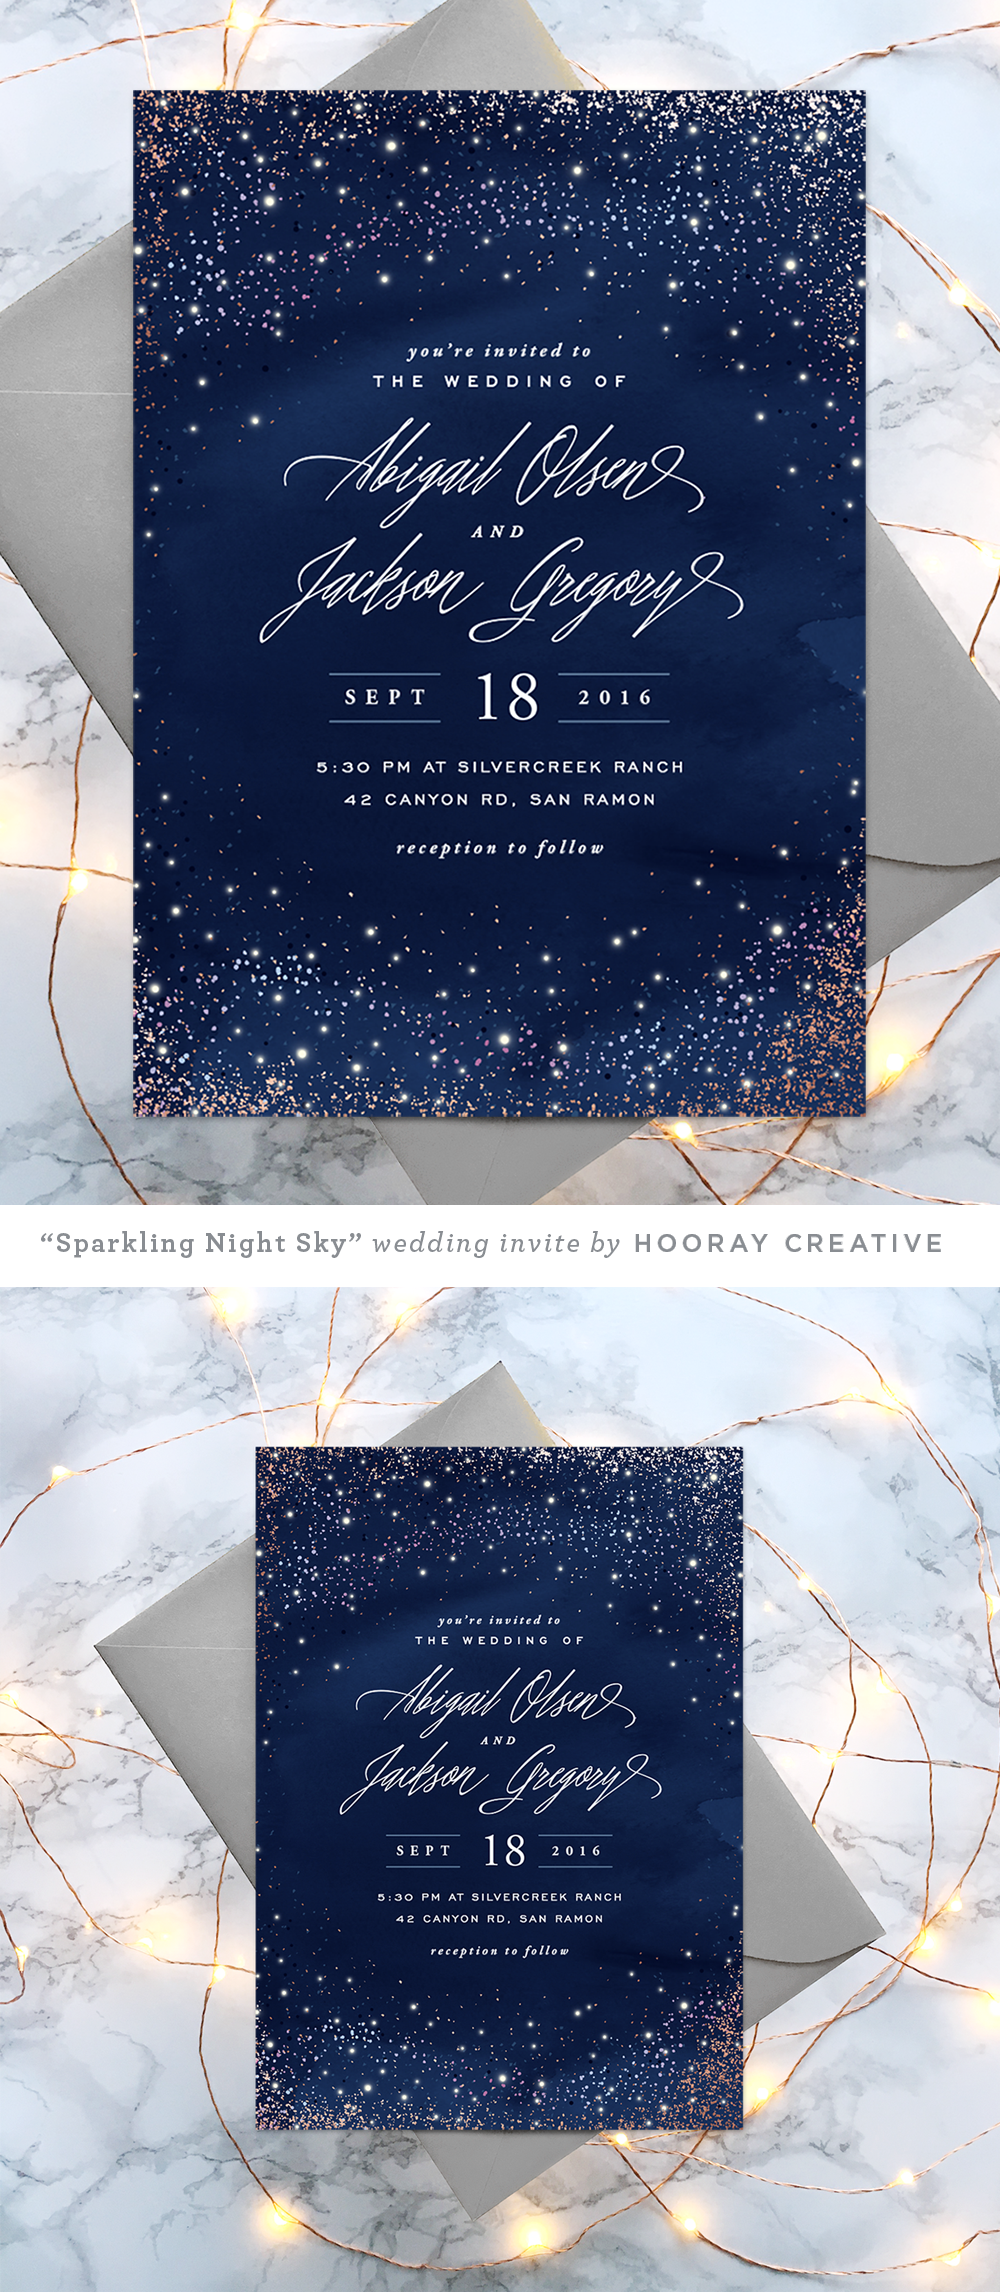 Sparkling Night Sky starry wedding invitation design and styling